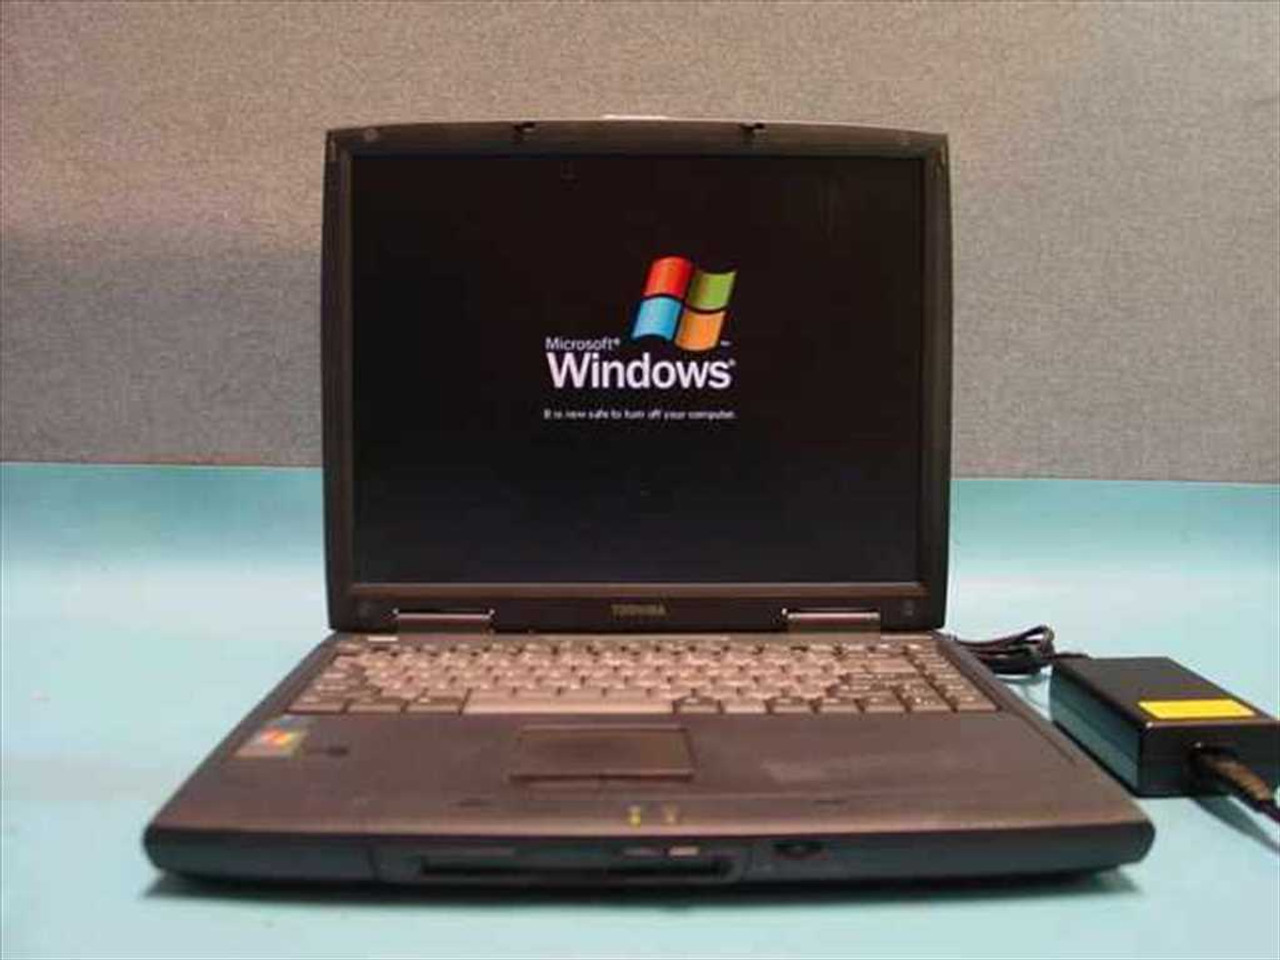 TOSHIBA SATELLITE 1115-S103 WINDOWS 7 64BIT DRIVER DOWNLOAD